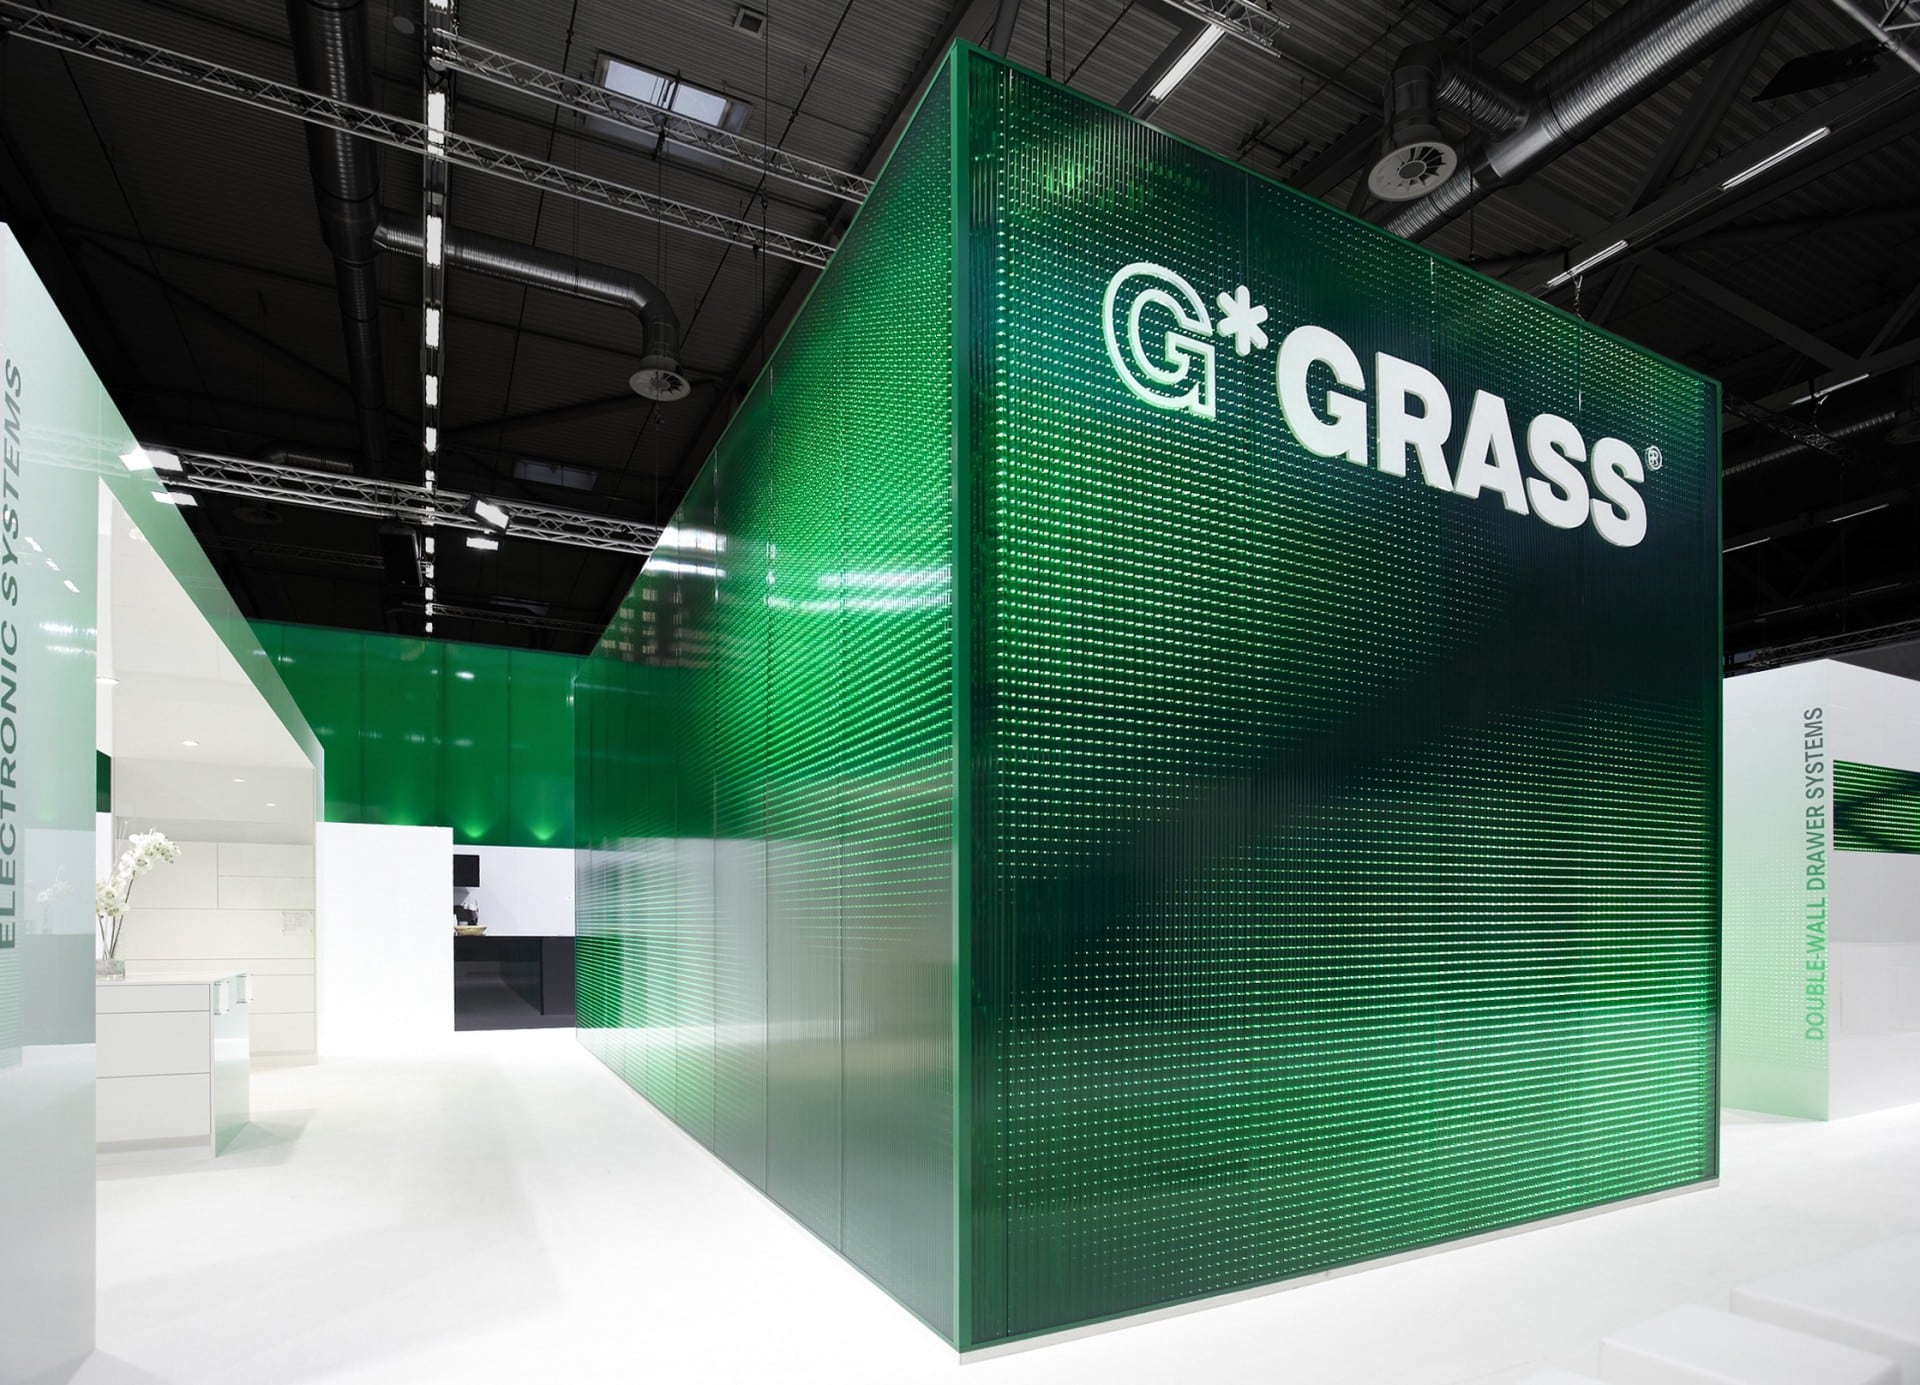 GRASS_Messe-IMG_4854_retouch